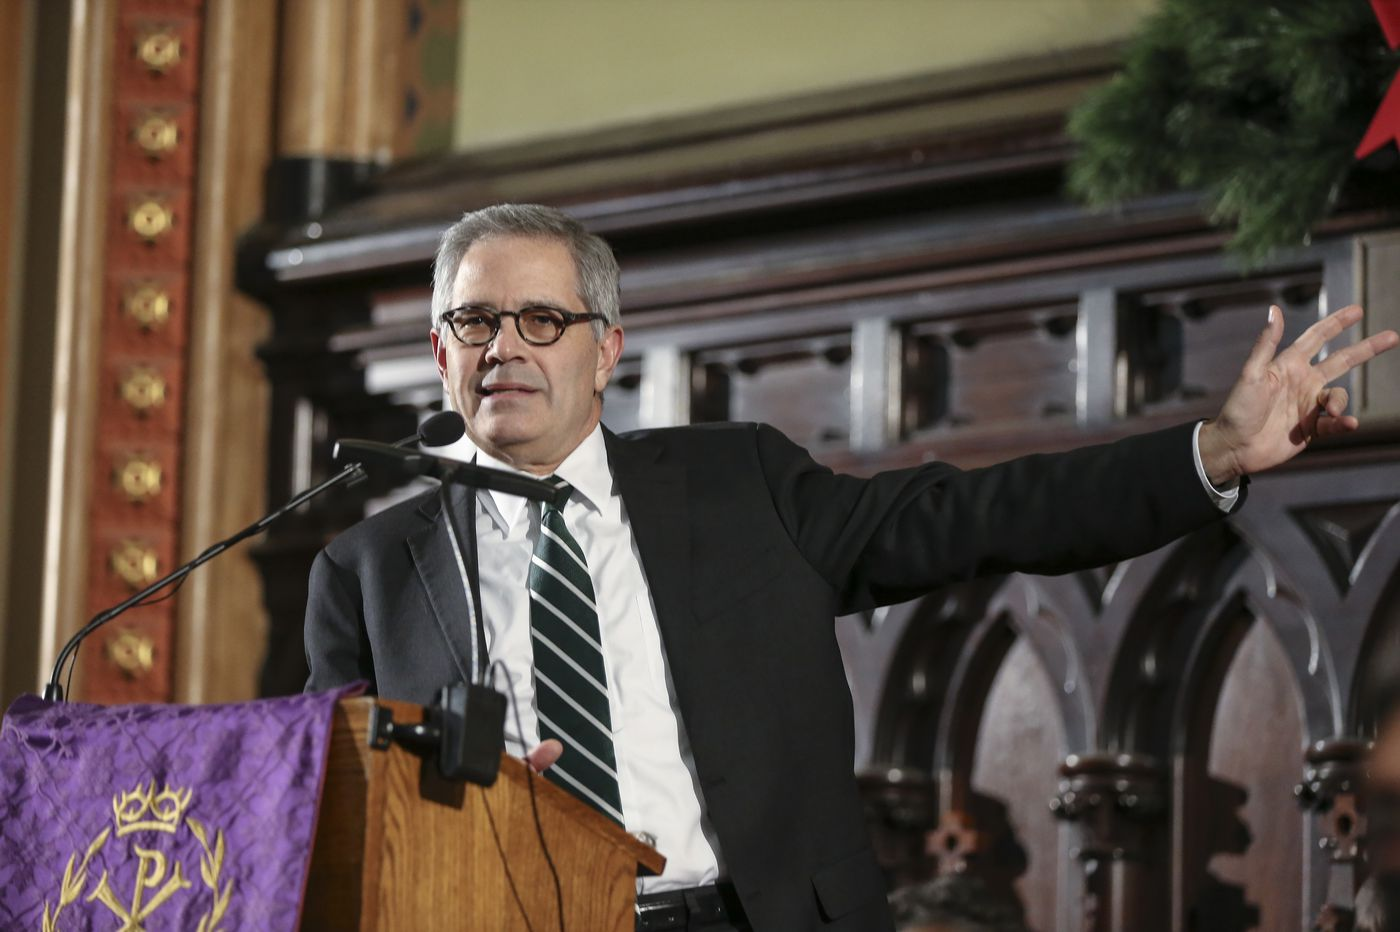 Two former top prosecutors have sued Philadelphia DA Larry Krasner, saying he fired them because of age